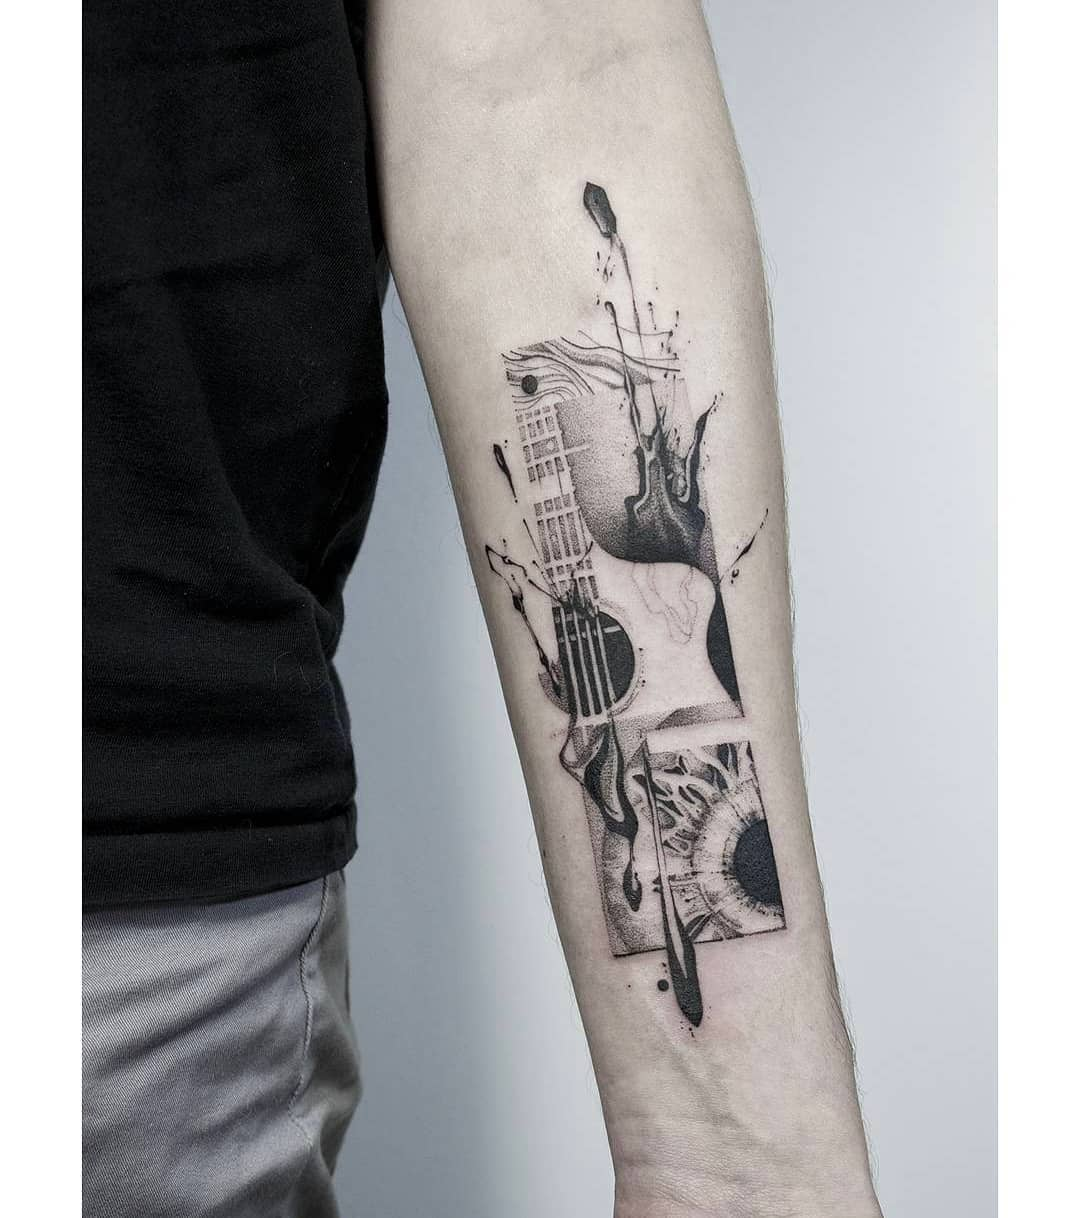 Tattoo of a guitar and an eye, tattoo with strong emotion